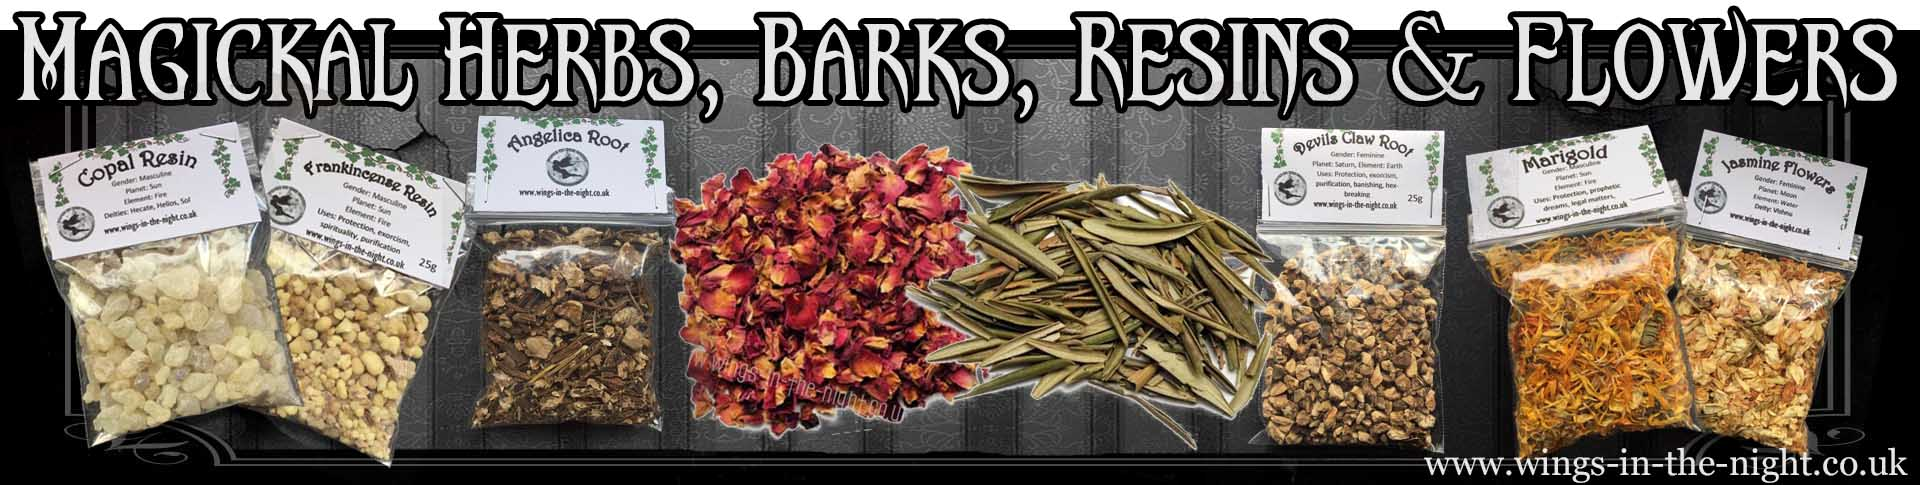 Pagan, Wicca and Witchcraft | Dried Herbs, Barks, Resins & Accessories